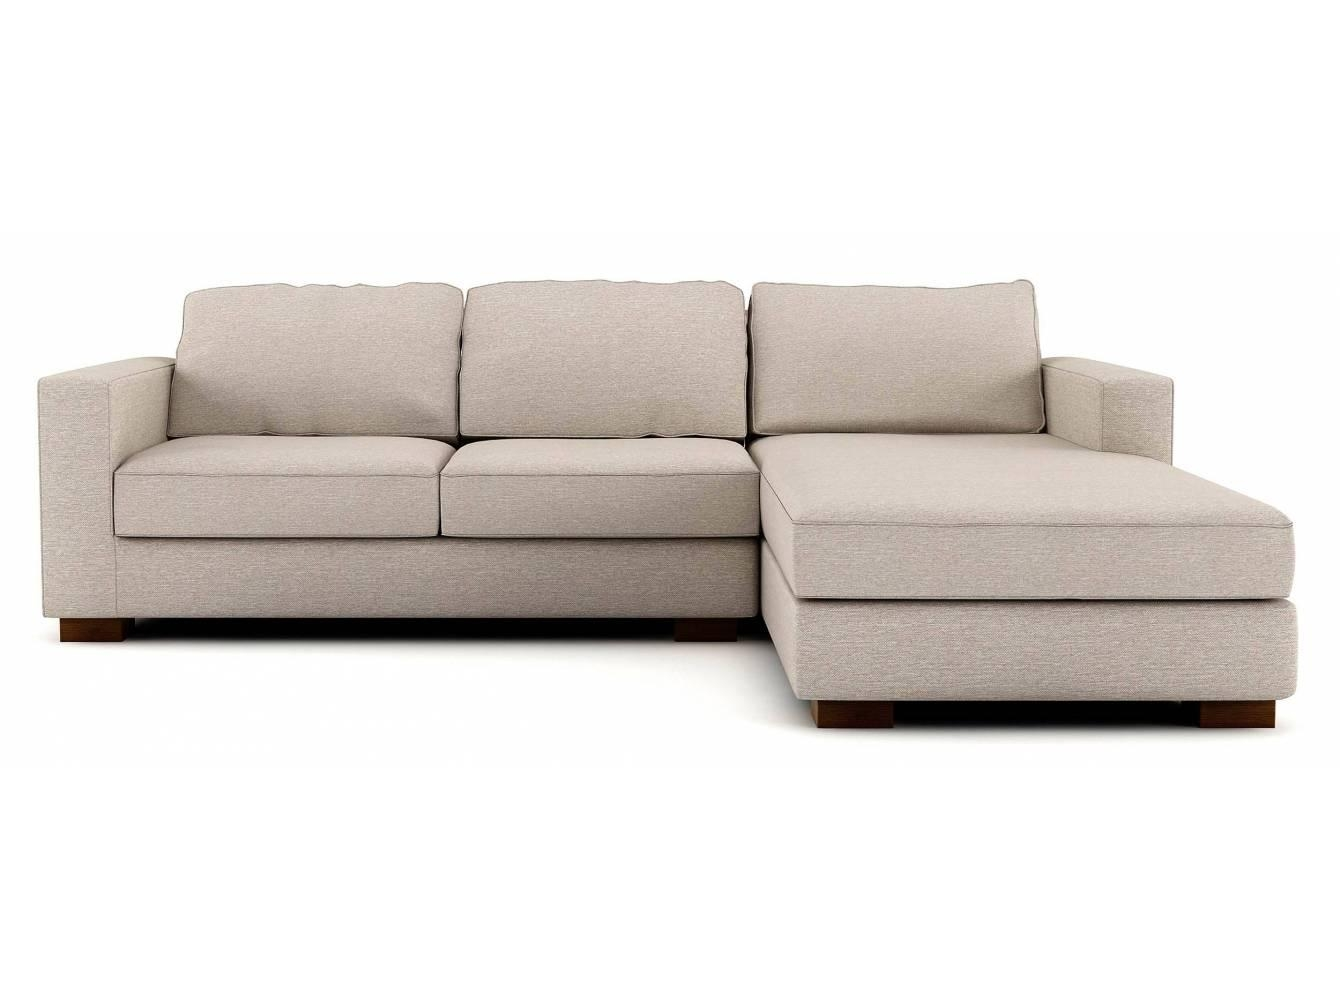 Rio Chaise Sectional – Stem Inside Eco Friendly Sectional Sofa (Image 13 of 15)